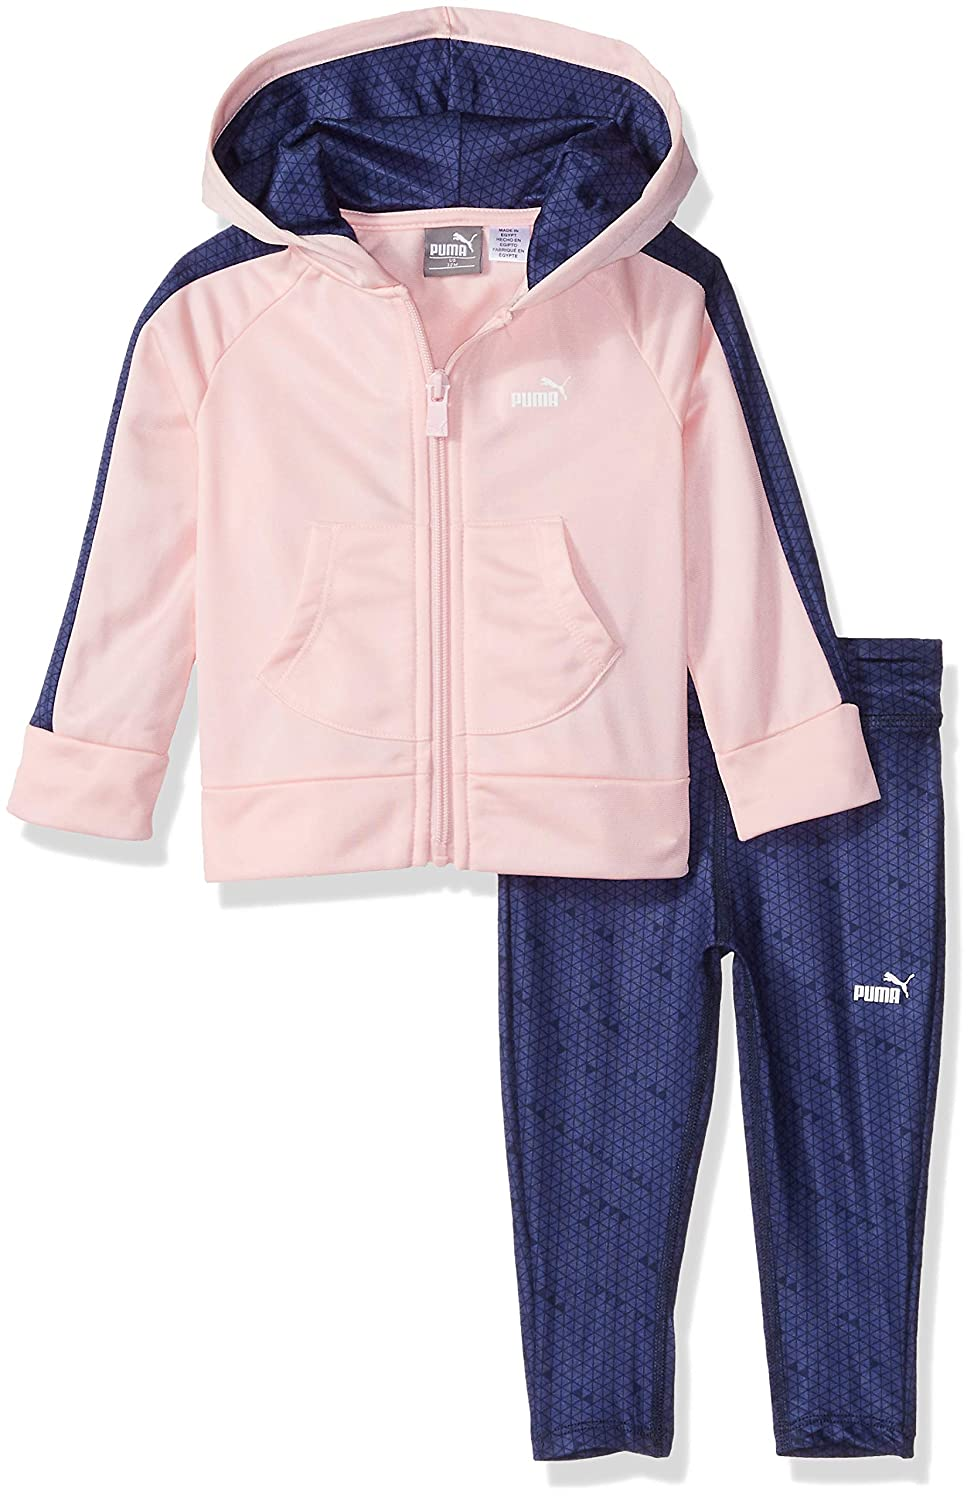 78926dd91 Amazon.com  PUMA Toddler Girls  Track Jacket and Legging Set  Clothing